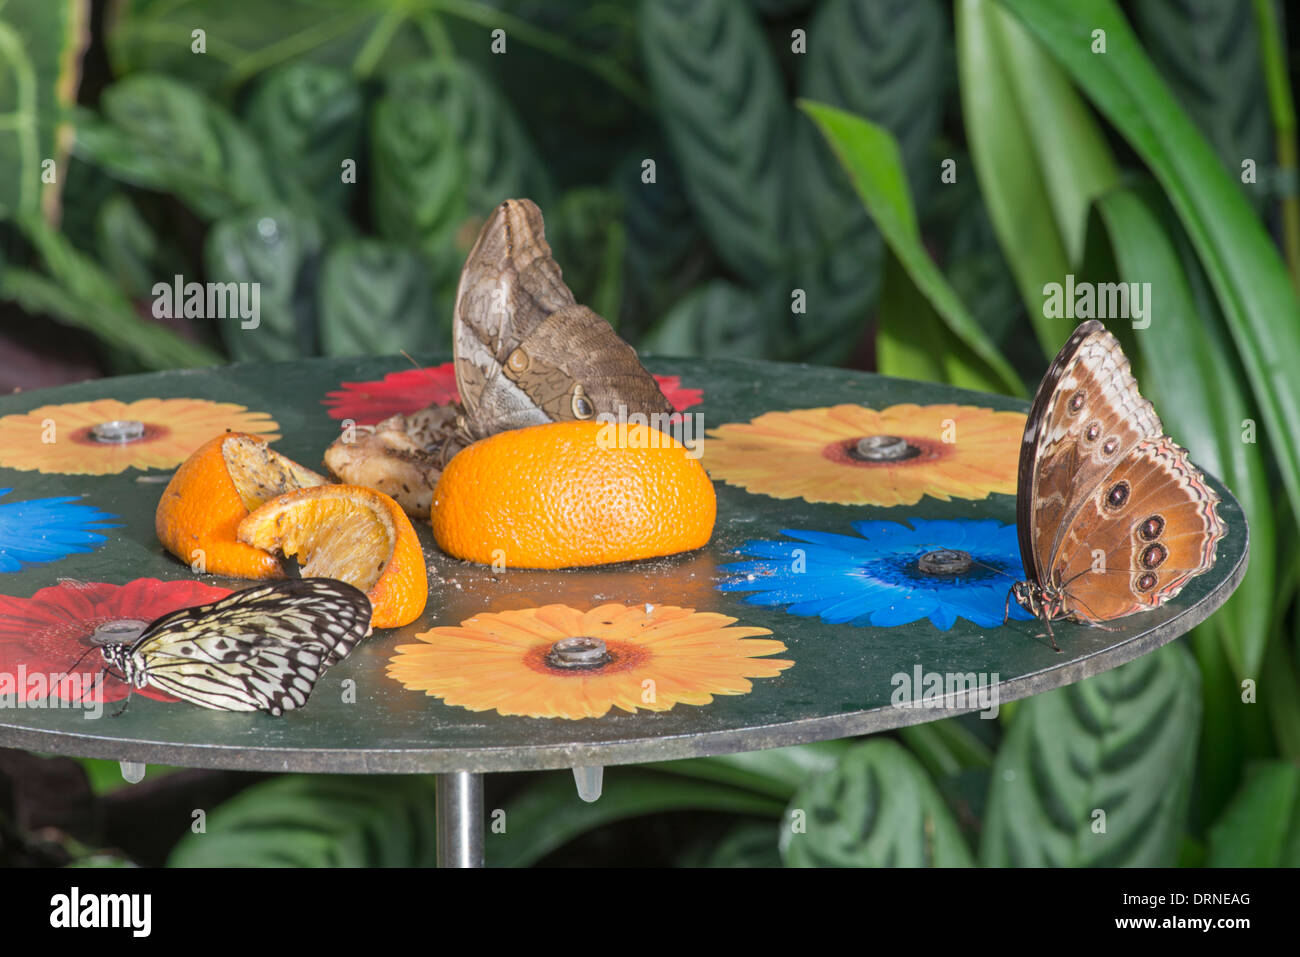 Best Kitchen Gallery: Feeding Station In Tropical Butterfly House Stock Photo 66240456 of Tropical Butterfly House  on rachelxblog.com